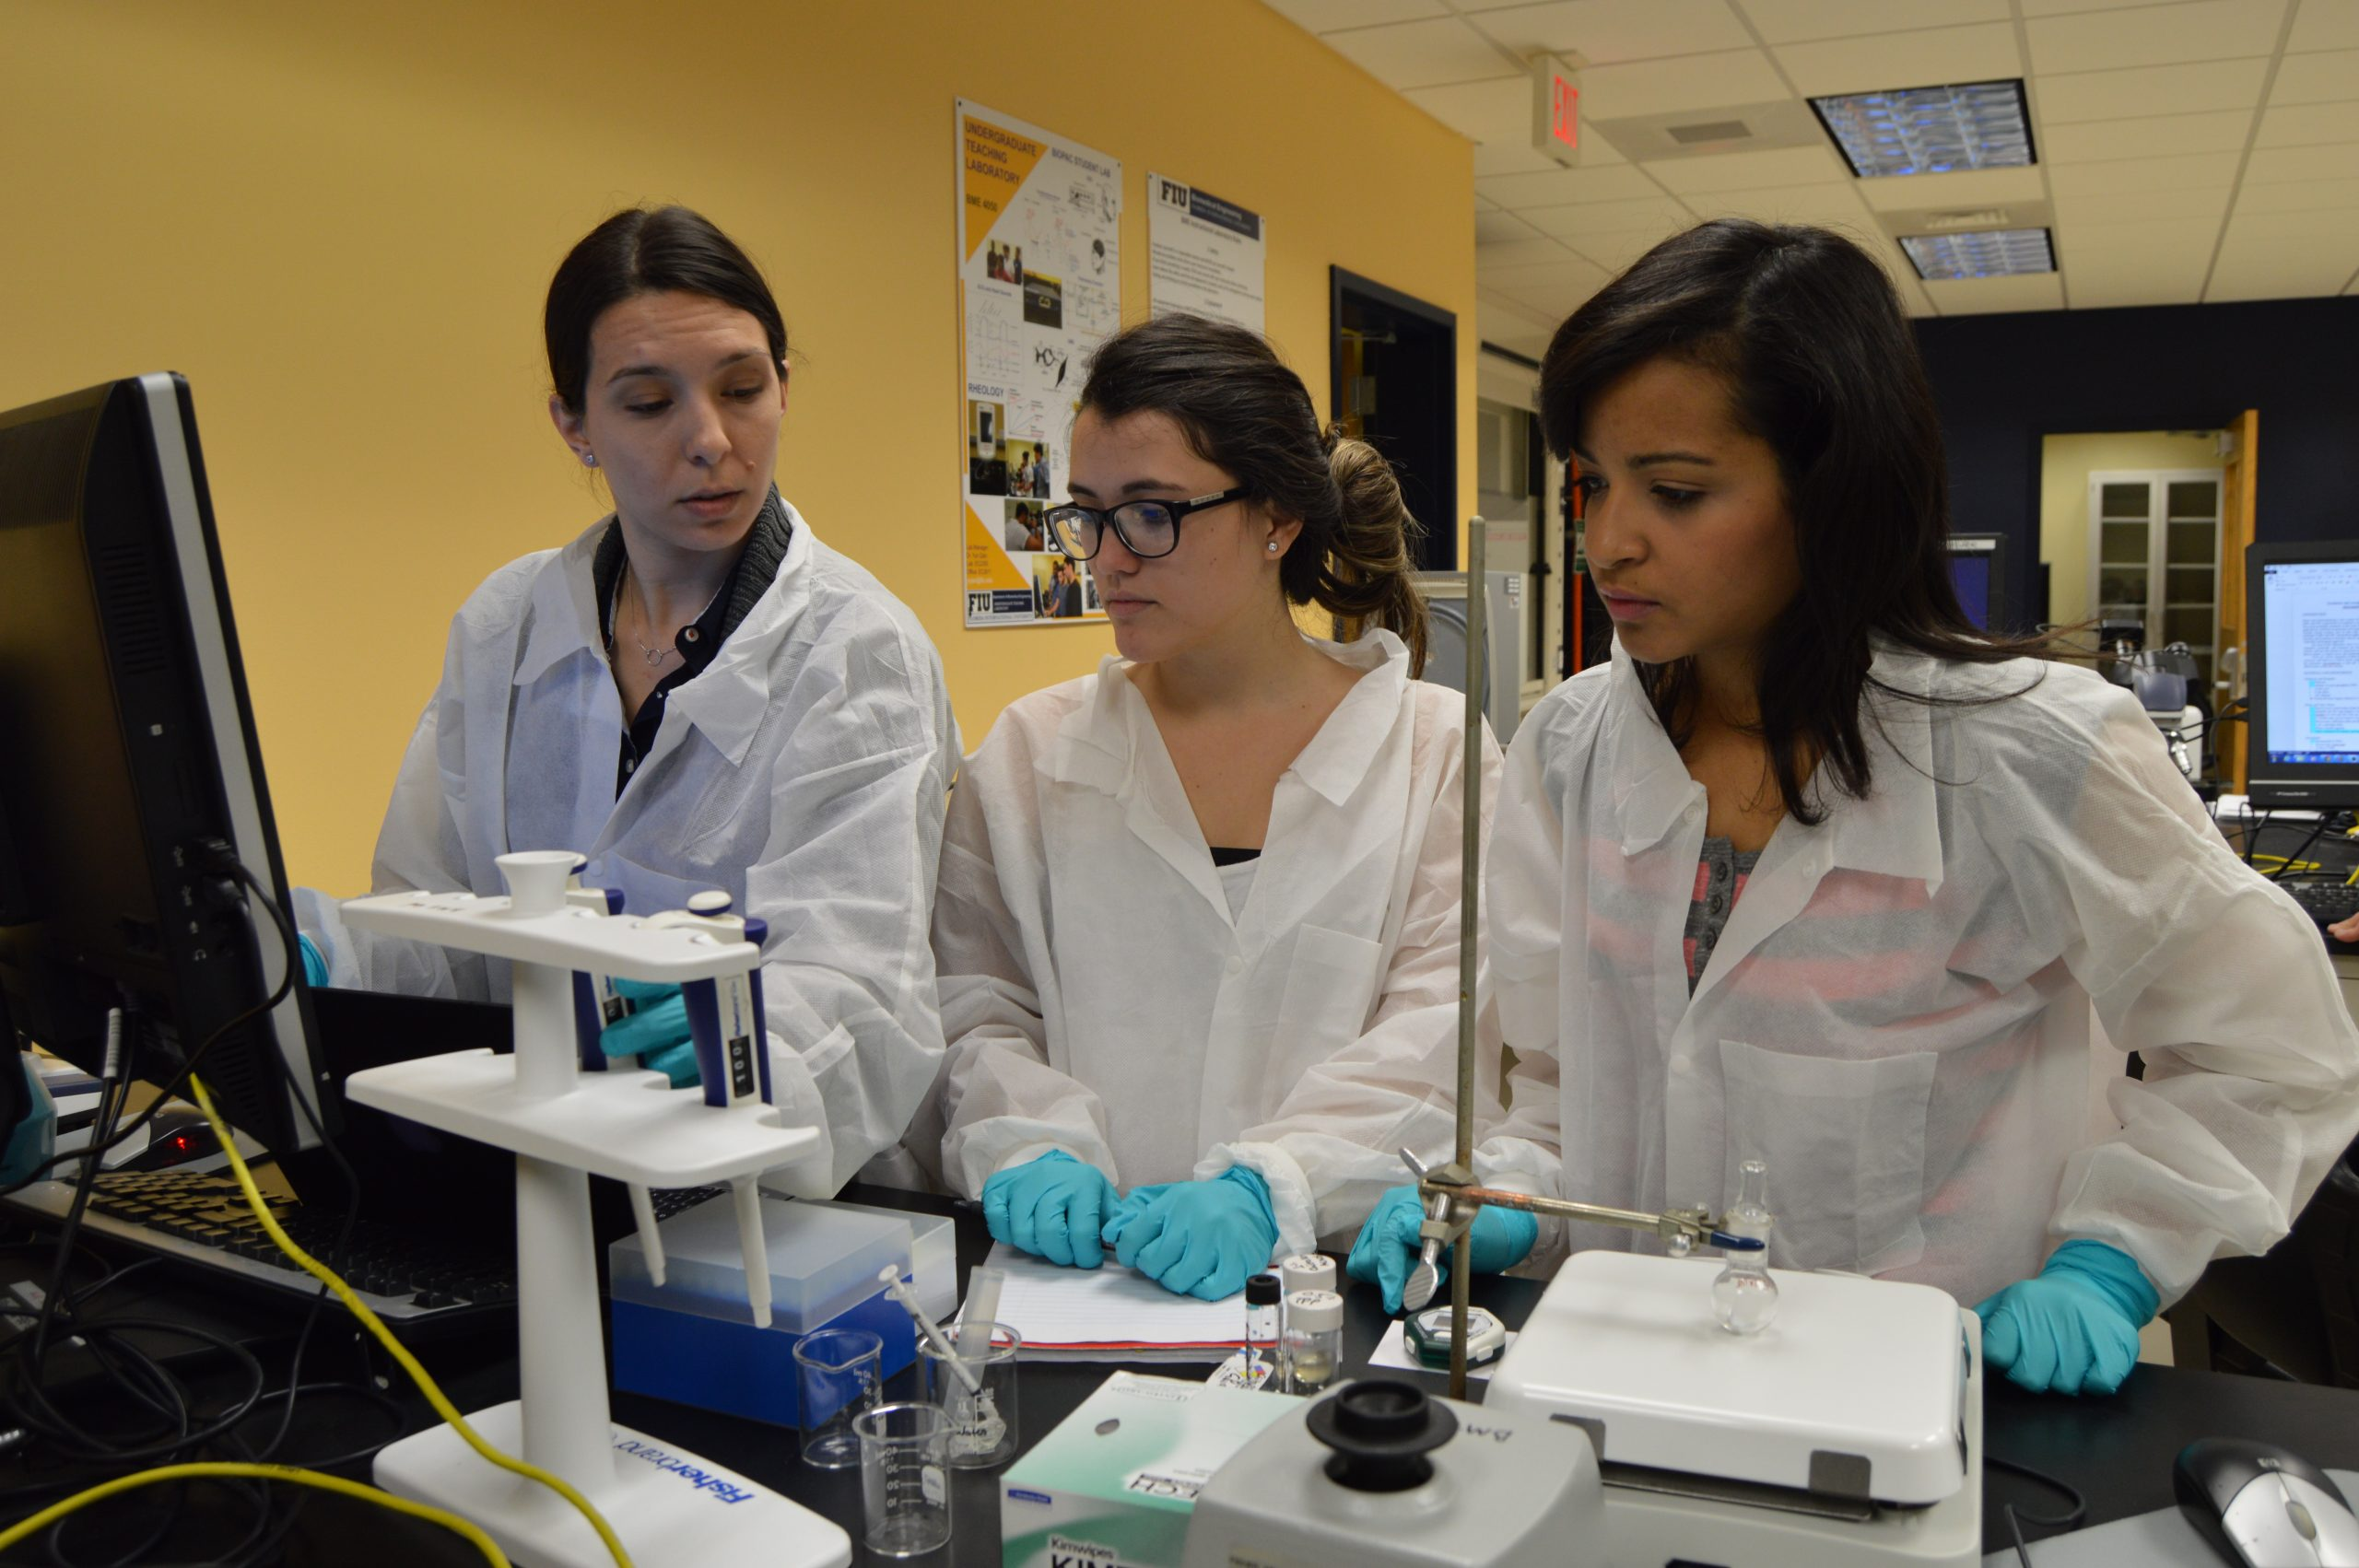 Resources for Biomedical Engineering Students